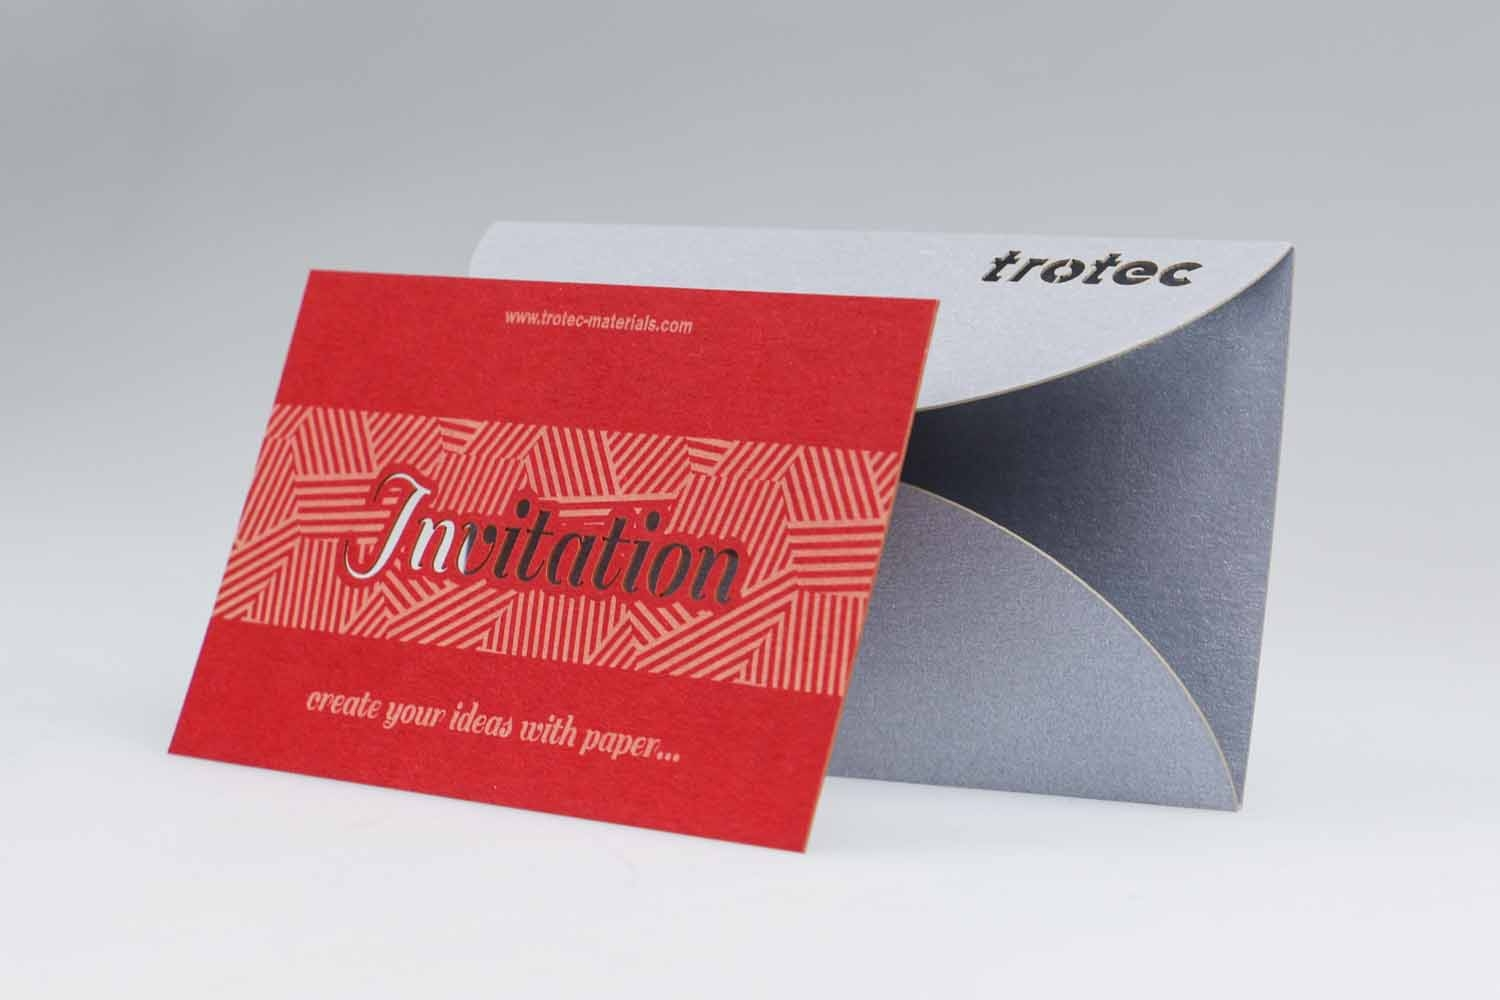 colored laser paper for printing and laser processing